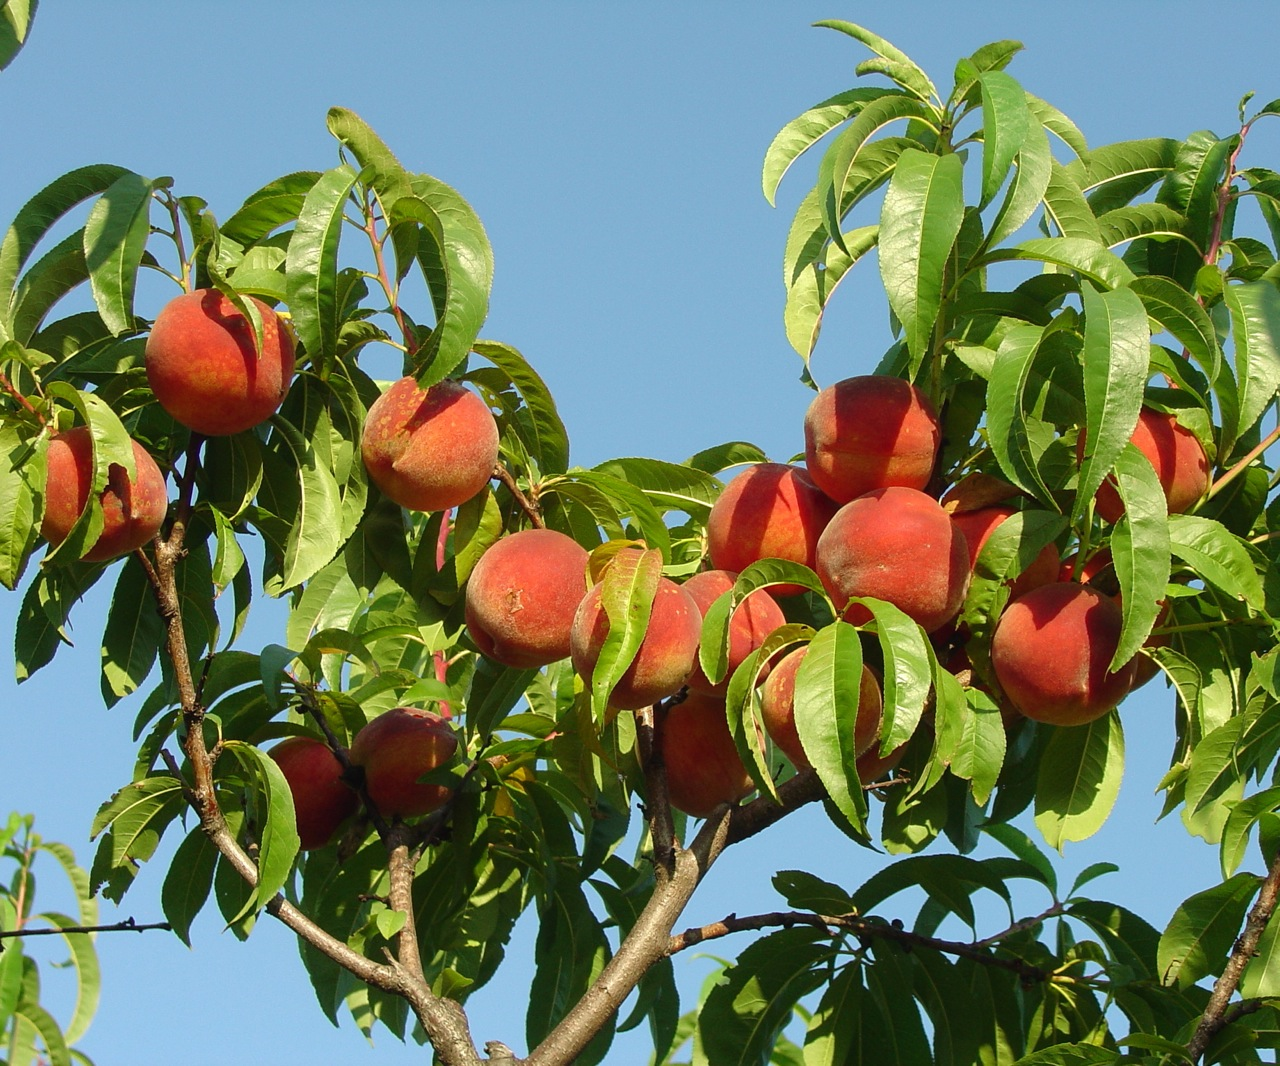 We have pick-your-own peaches, not ripe to pick until mid-August.